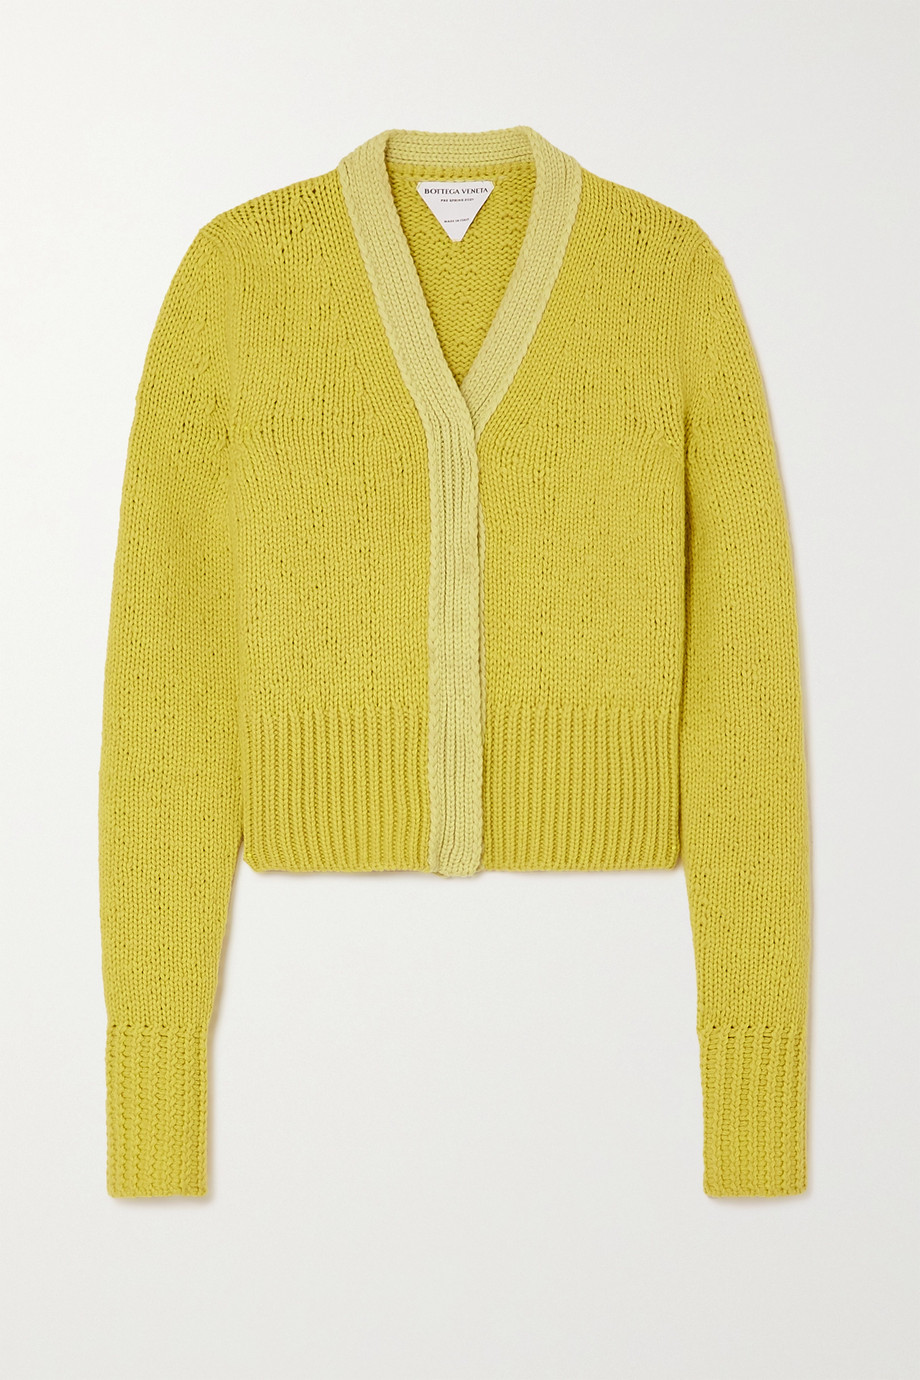 Bottega Veneta Wool and cashmere-blend cardigan